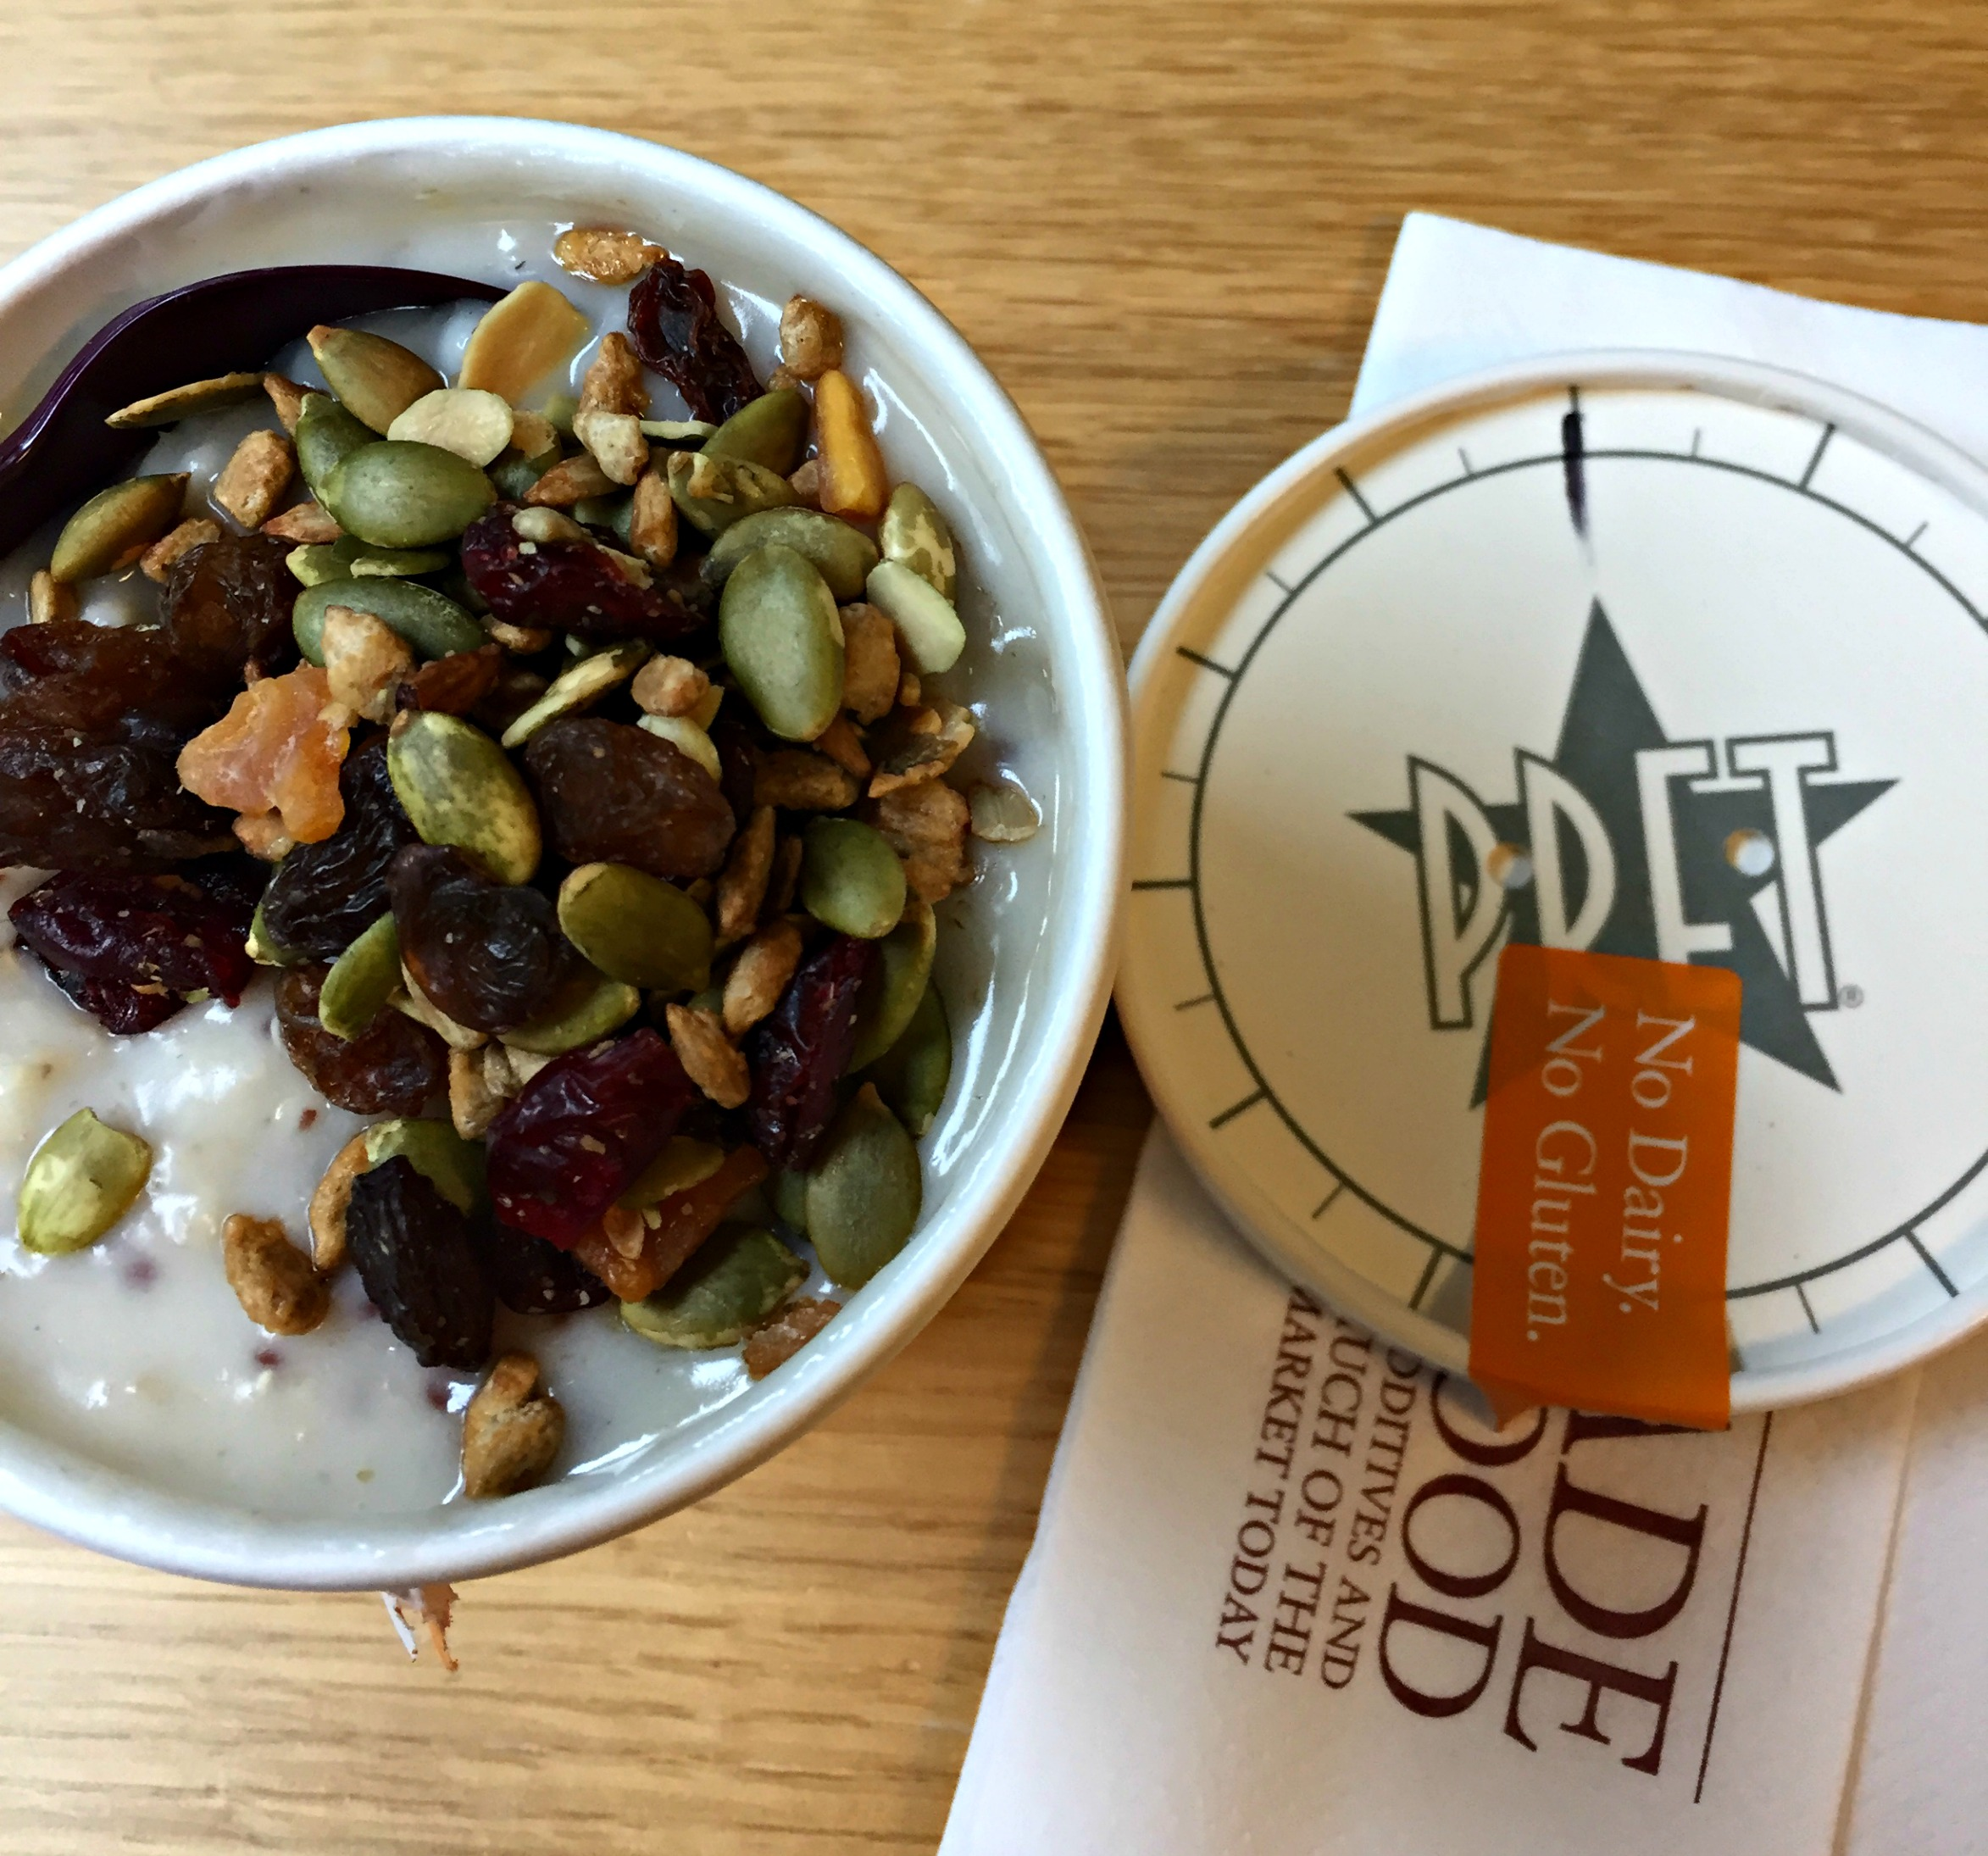 Breakfast: Pret coconut porridge